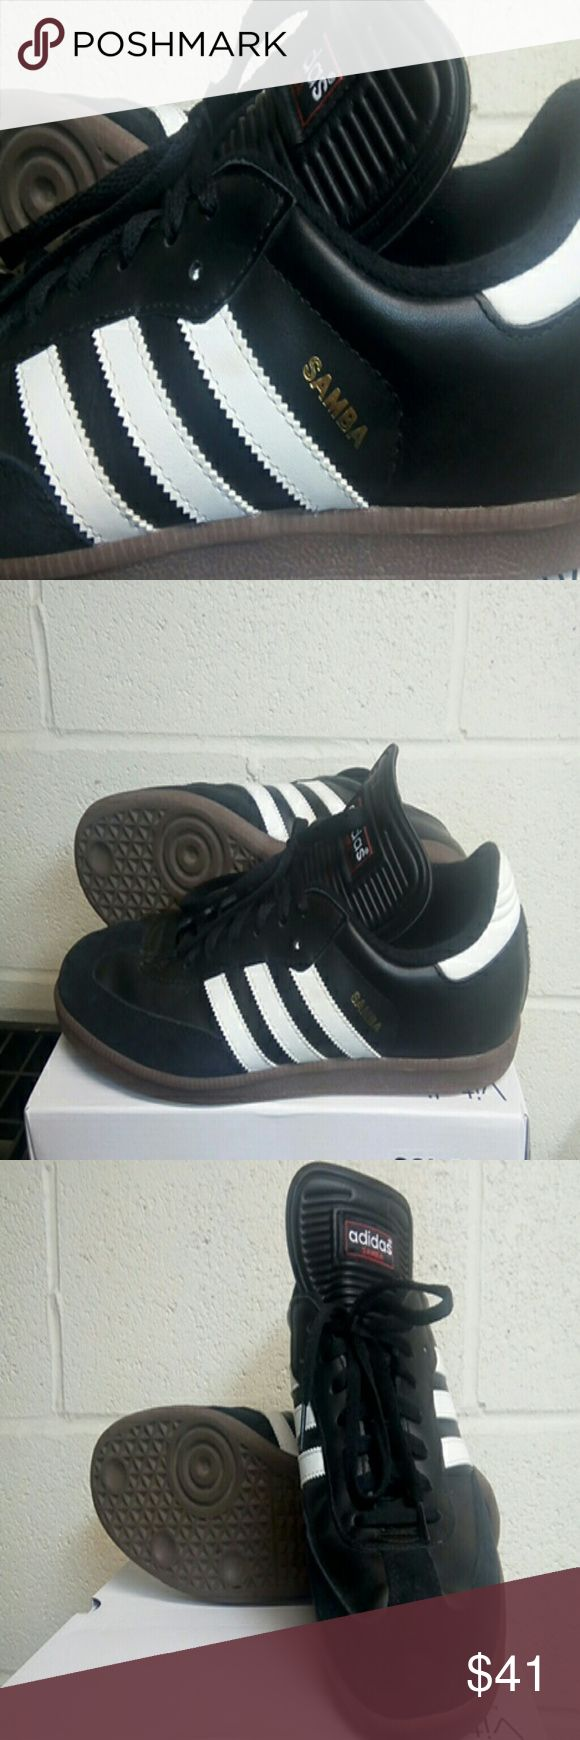 Adidas Samba Futball Soccer shoes Classic style Adidas Samba size 11.  USD but great condition.  Non smoking and no pet home. adidas Shoes Sneakers